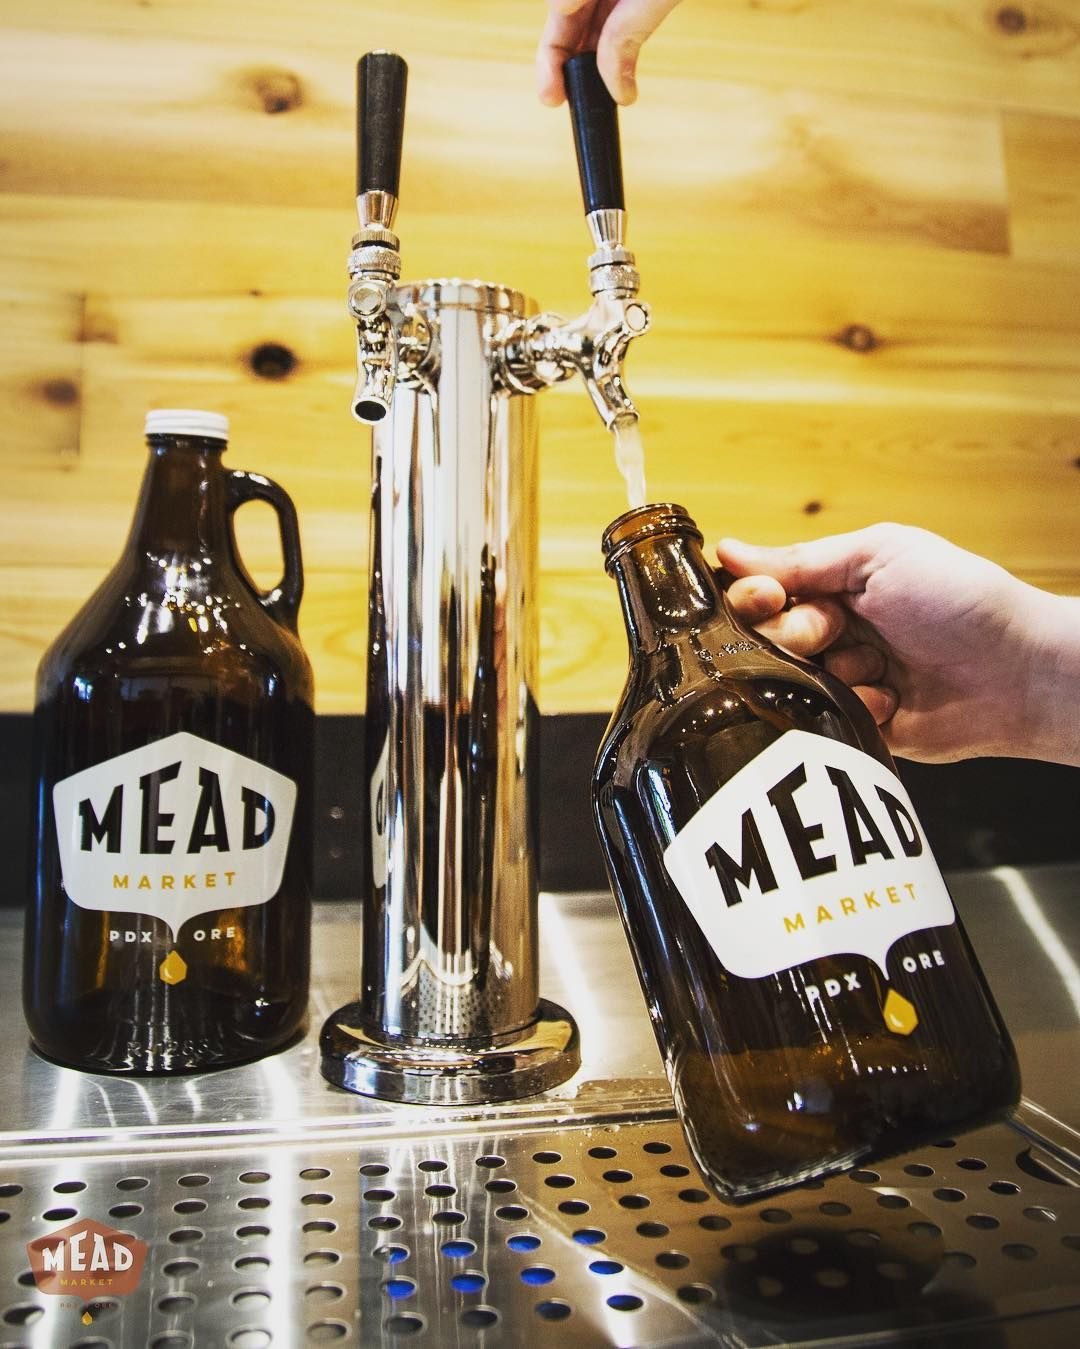 If you're in Portland, Oregon, stop in to Mead Market on SE Hawthorne for mead tasting and growler fills!